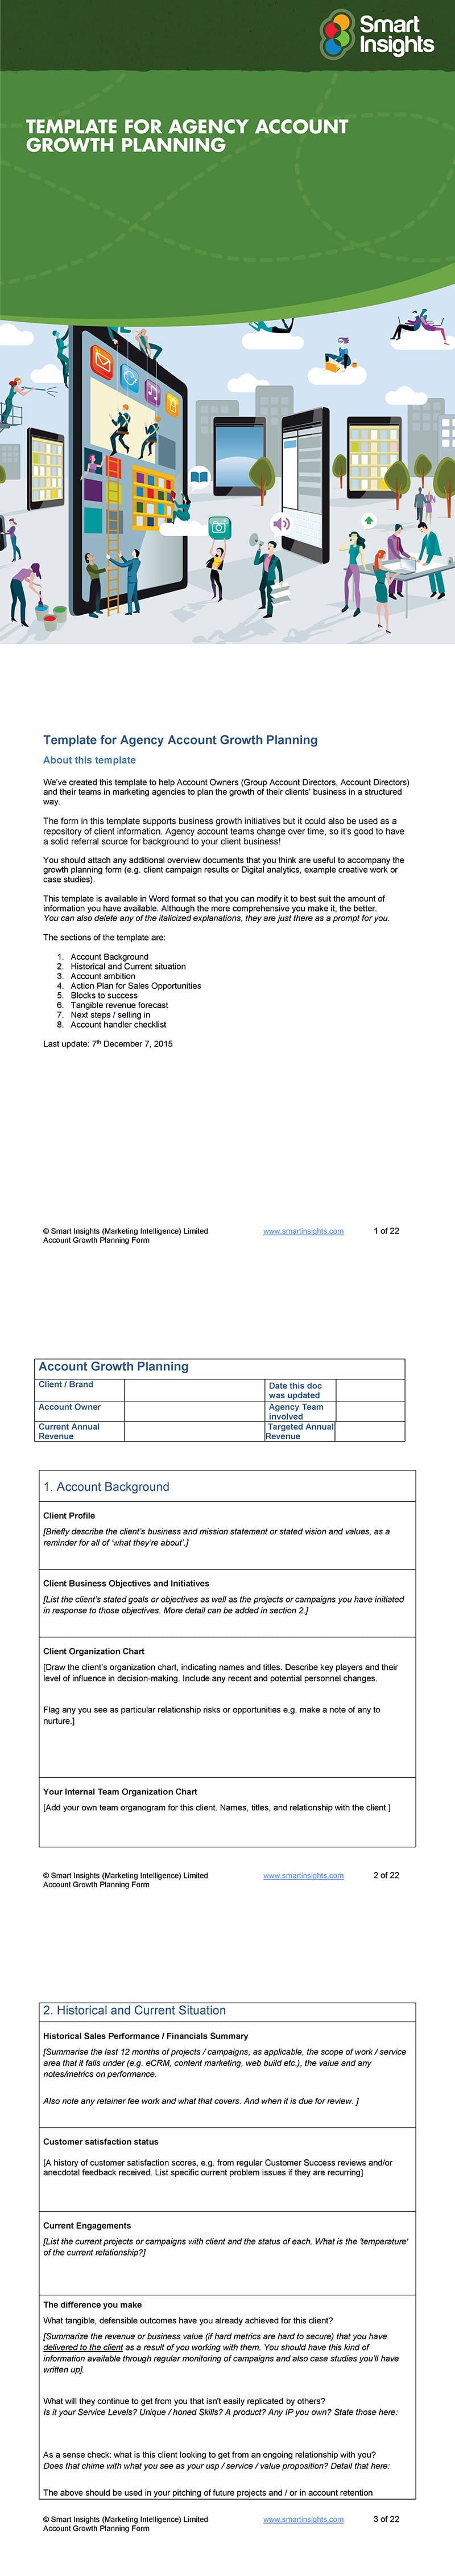 Agency Account Growth Planning Template